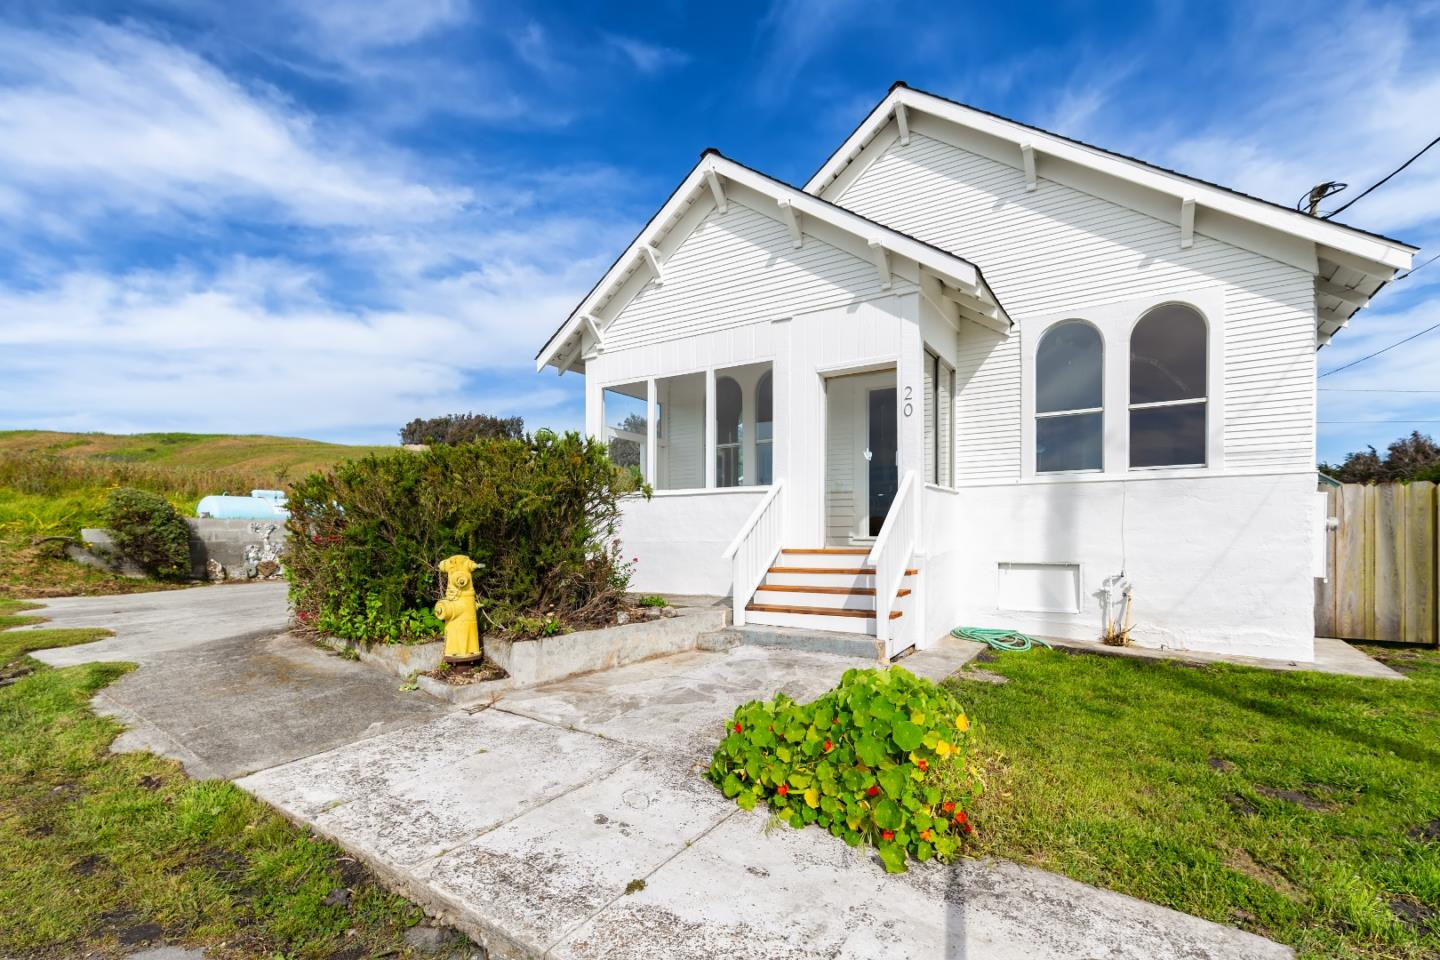 Beautiful Ocean View  home in Historic Davenport, the best little beach town on the coast!  End of the road location,Surrounded by protected open space,  rebuilt classic craftsman style home, eller updates include include high efficiency central heat, newer roof, new electrical, new plumbing, new Fir doors, new clear fir trim, refinished original fir floors, new insulation, new sheetrock, dual paned windows, new bath room, outdoor deck and shower.  Lots of garden space, potential for ADU, plenty of parking, great views in all directions, this is a prime location, great elementary school and a wonderful community.  Must see to fully appreciate this classic beach home on one of the most beautiful and peaceful neighborhoods on the California coast.